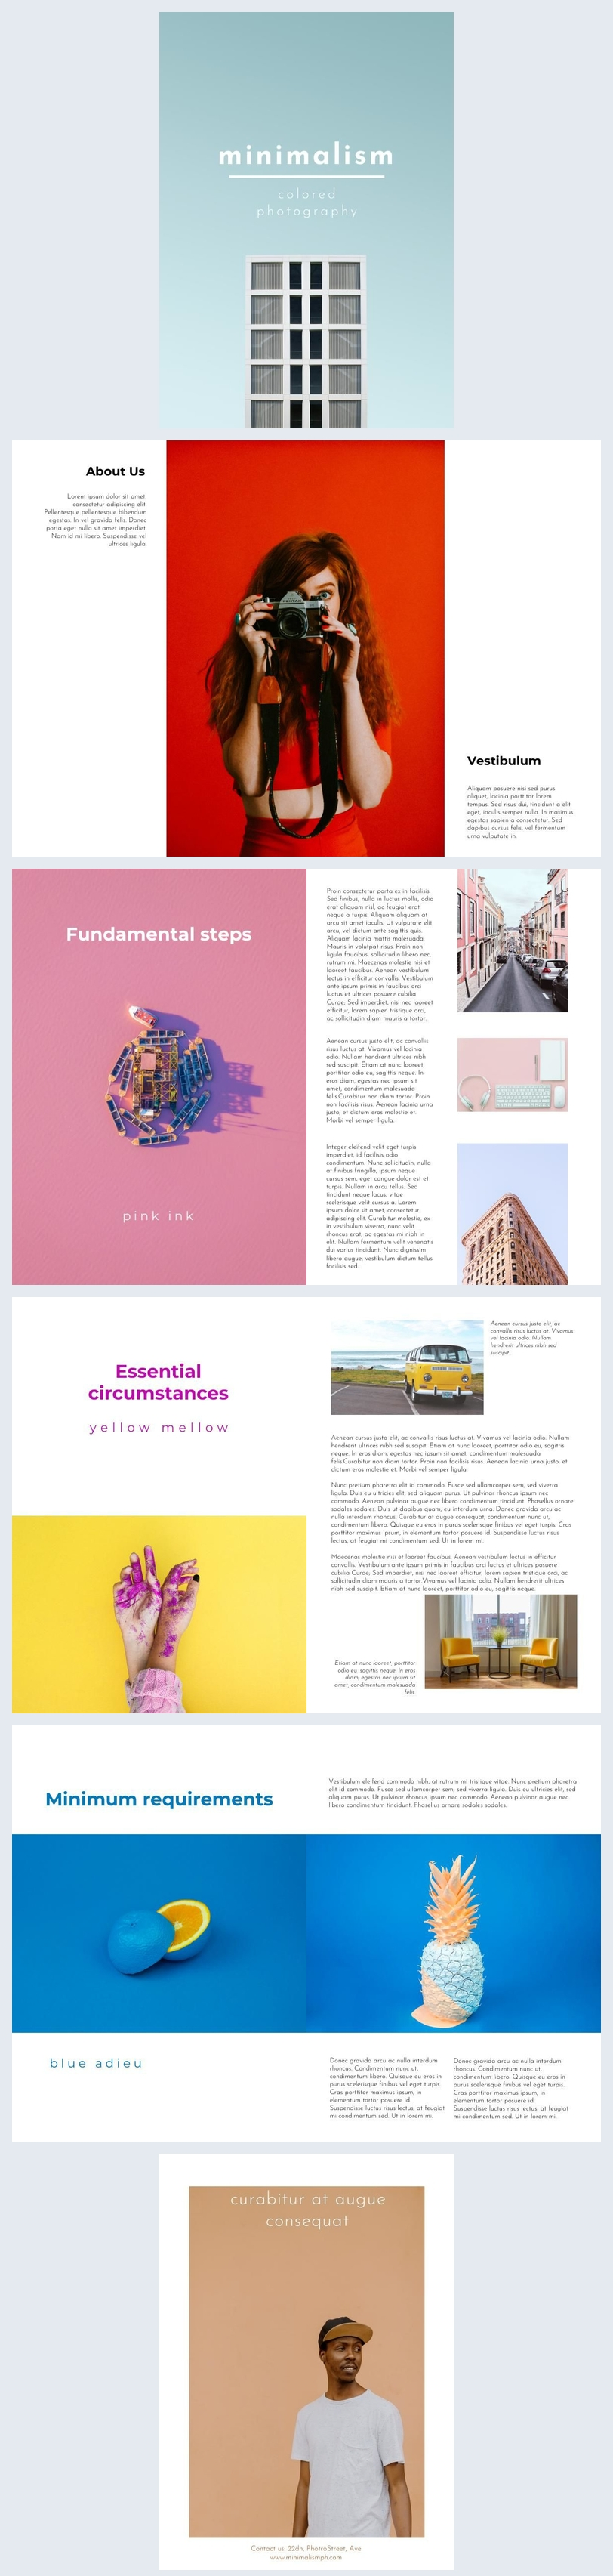 Minimalist Photography Magazine Design